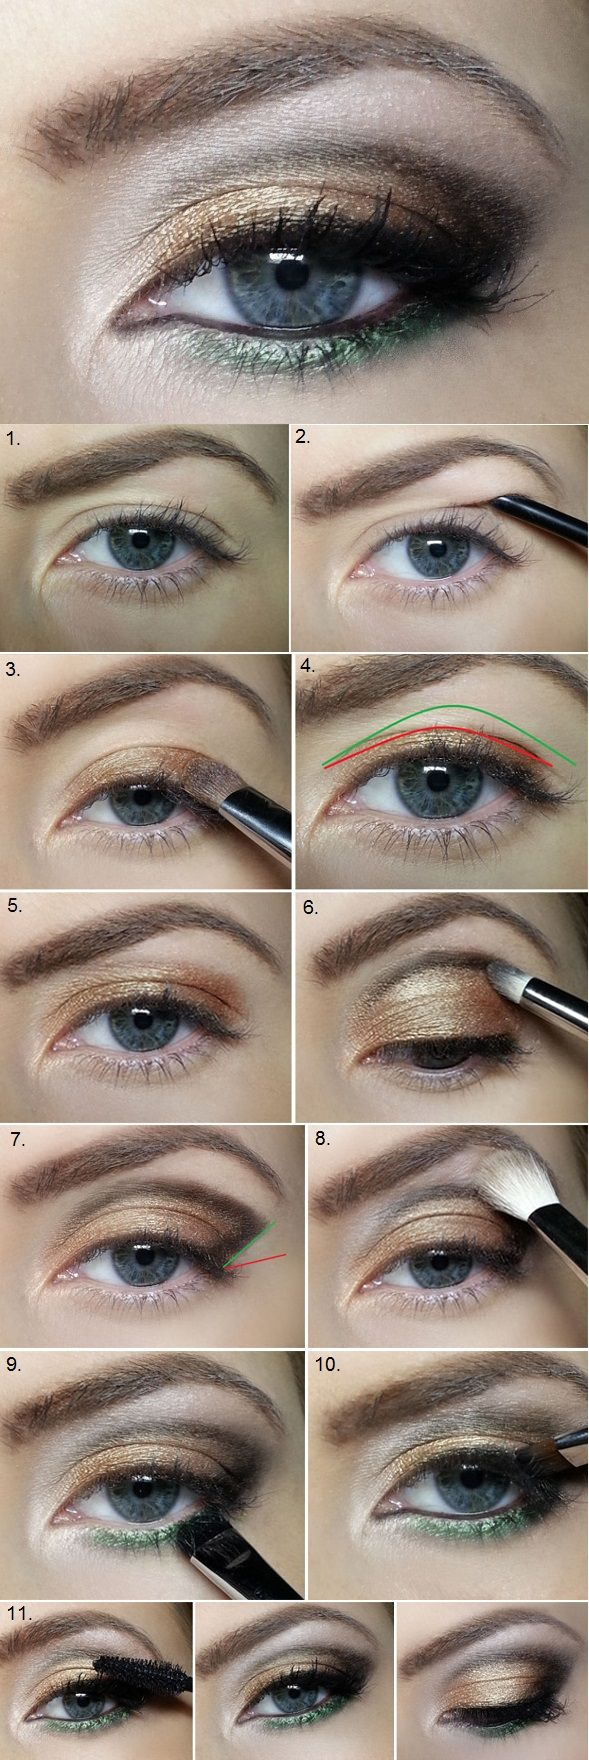 Correct Sagging Eyelids with This Amazing Makeup Idea